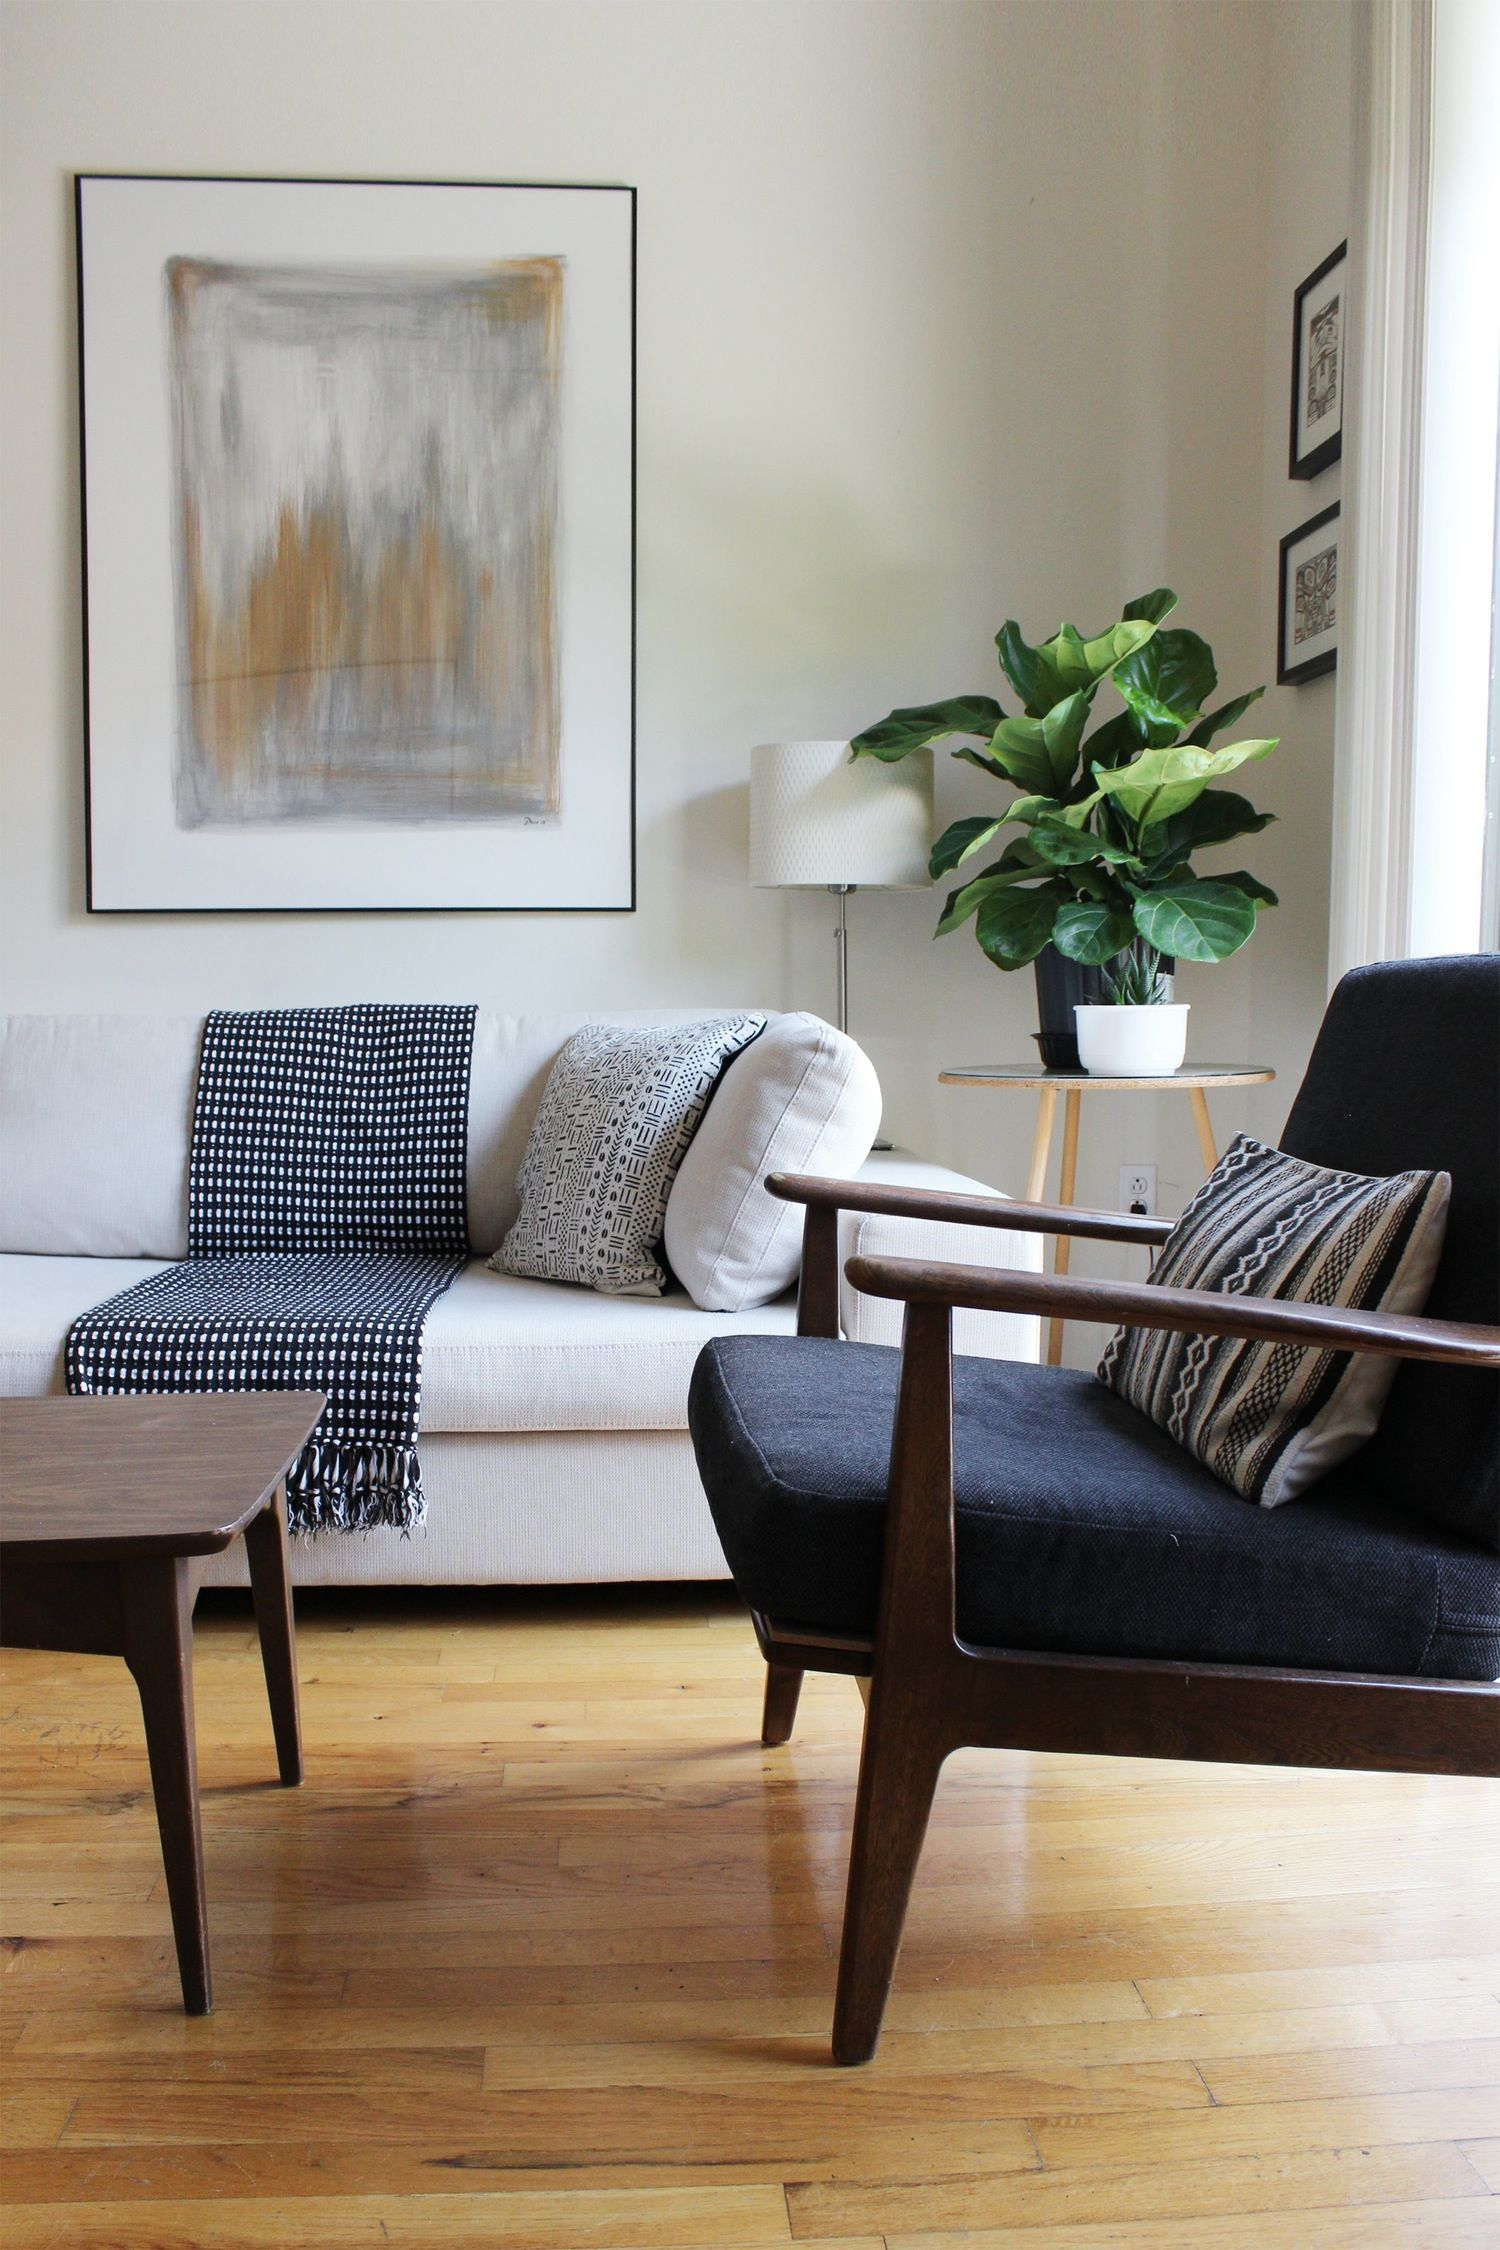 Home Decorating Ideas The 5 Secrets To Pulling Off Simple Minimal